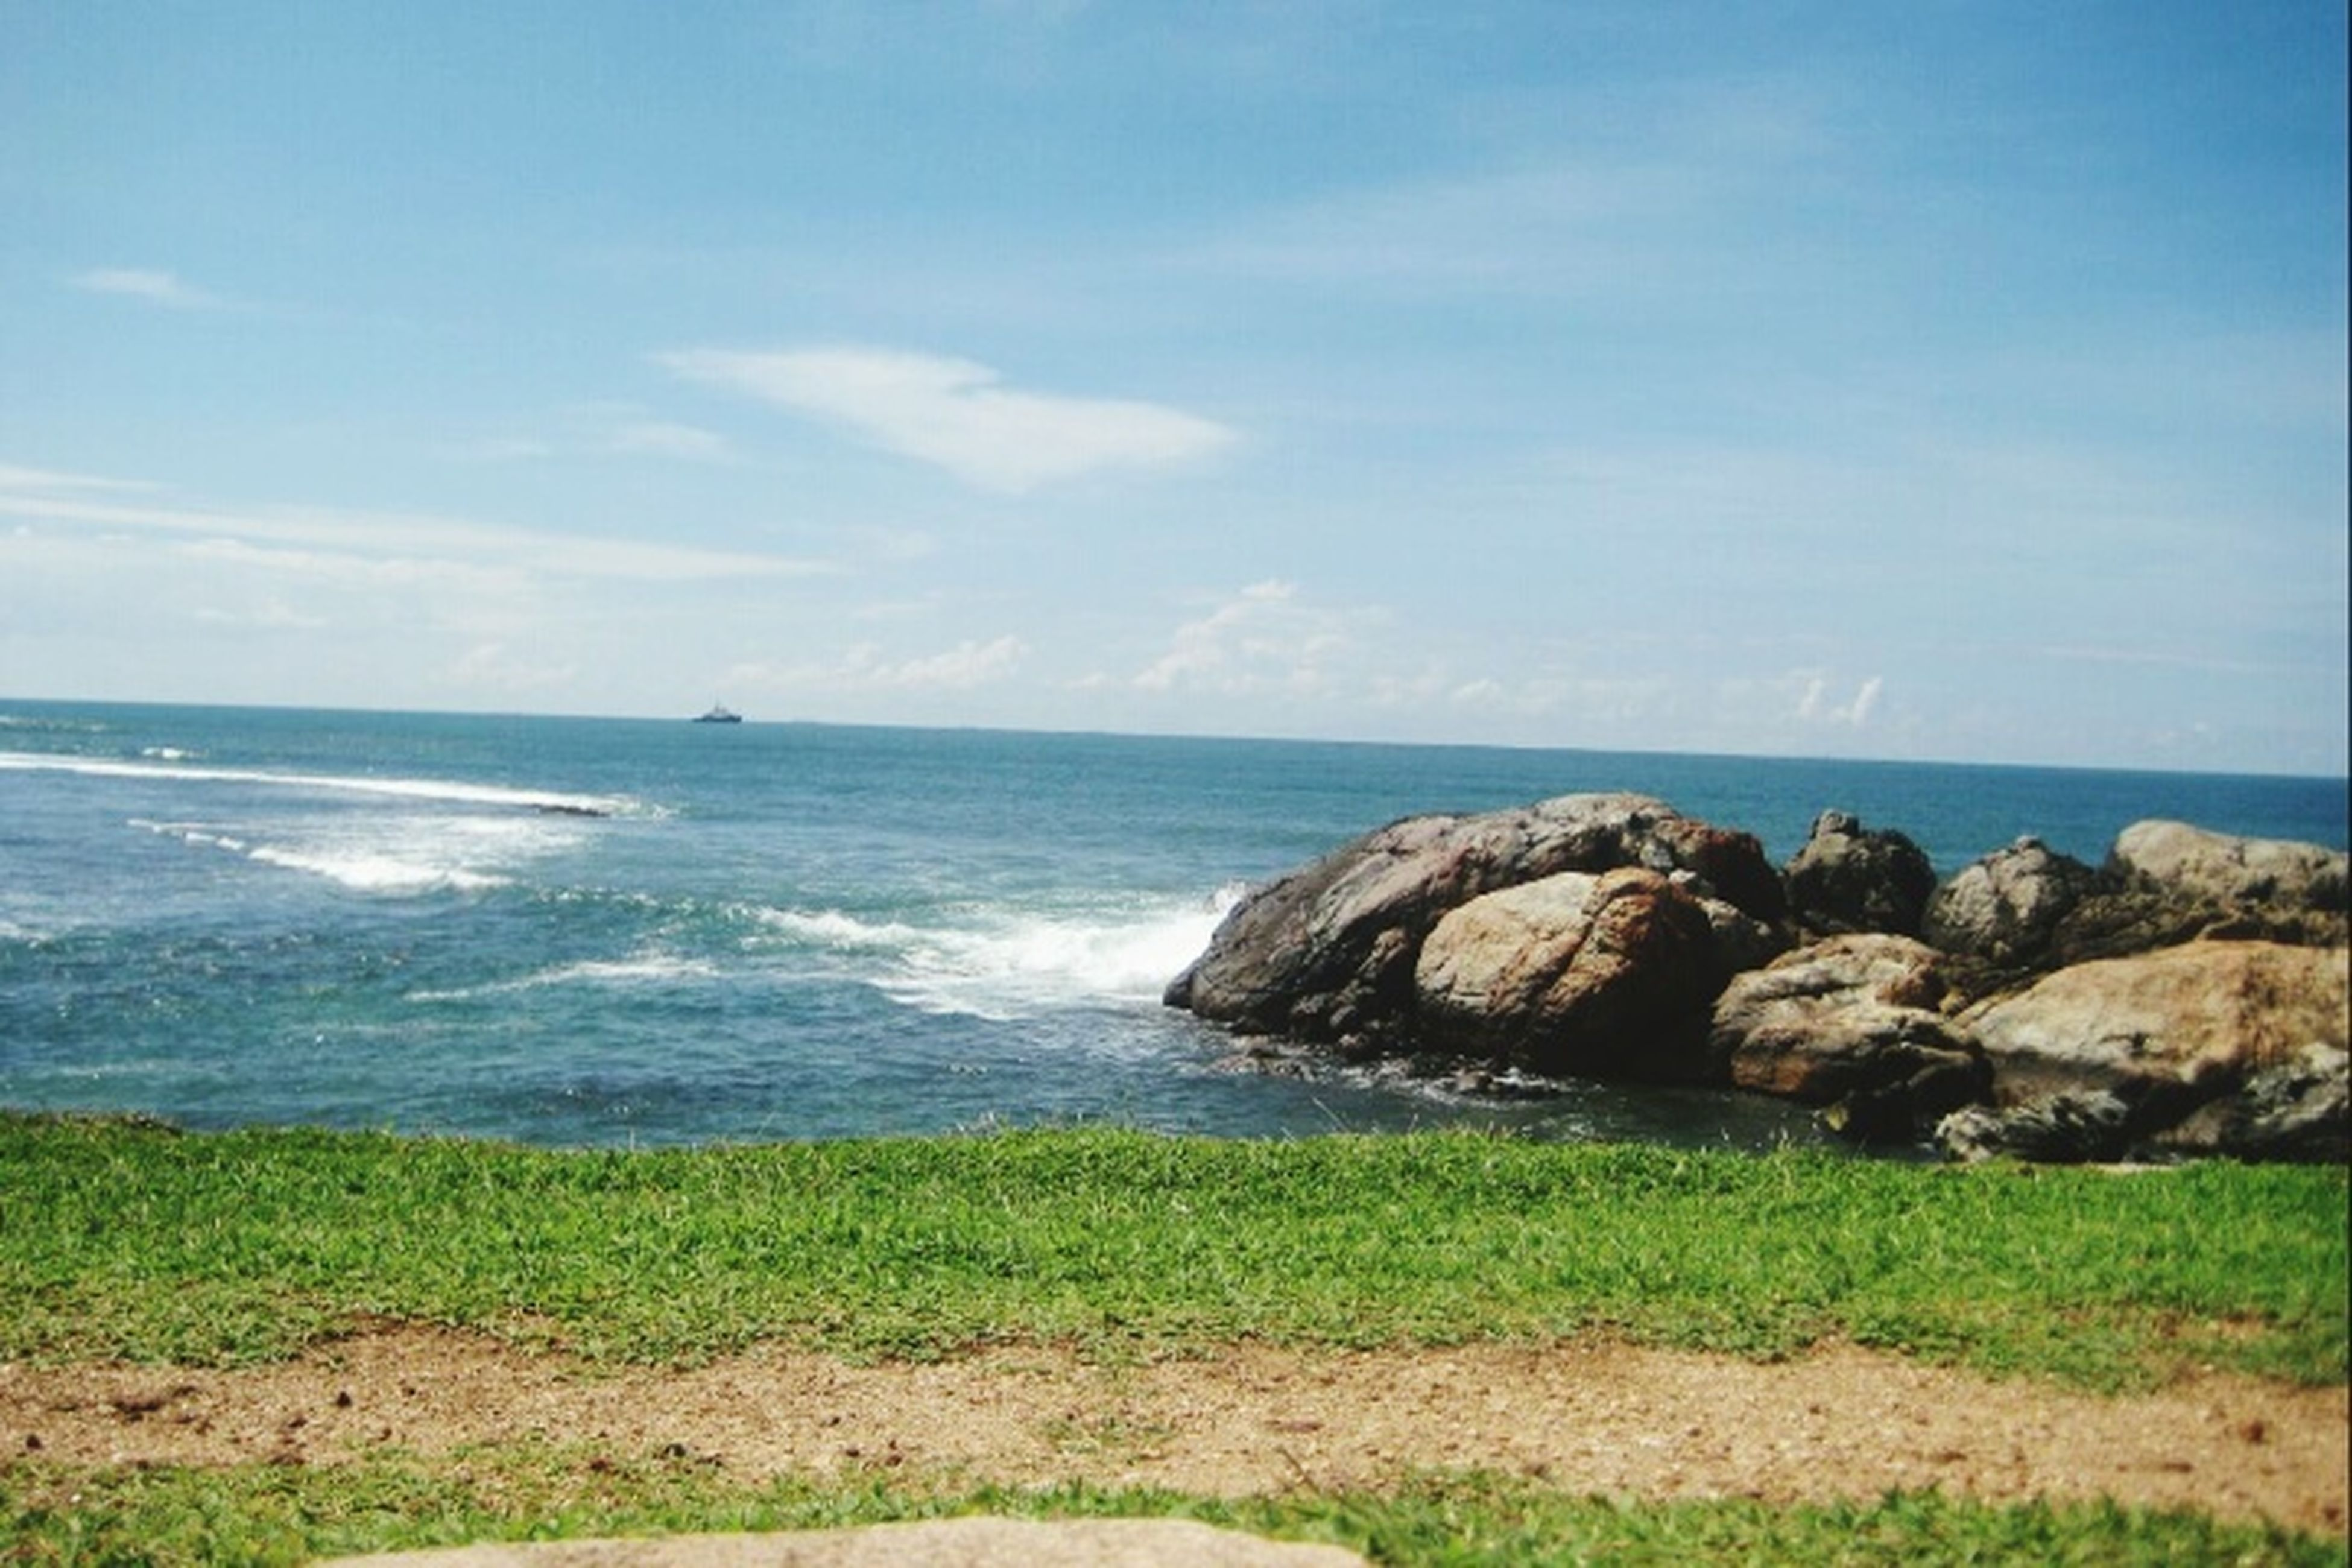 sea, horizon over water, beach, scenics, nature, sky, water, beauty in nature, wave, no people, day, outdoors, cloud - sky, grass, sand, tranquility, landscape